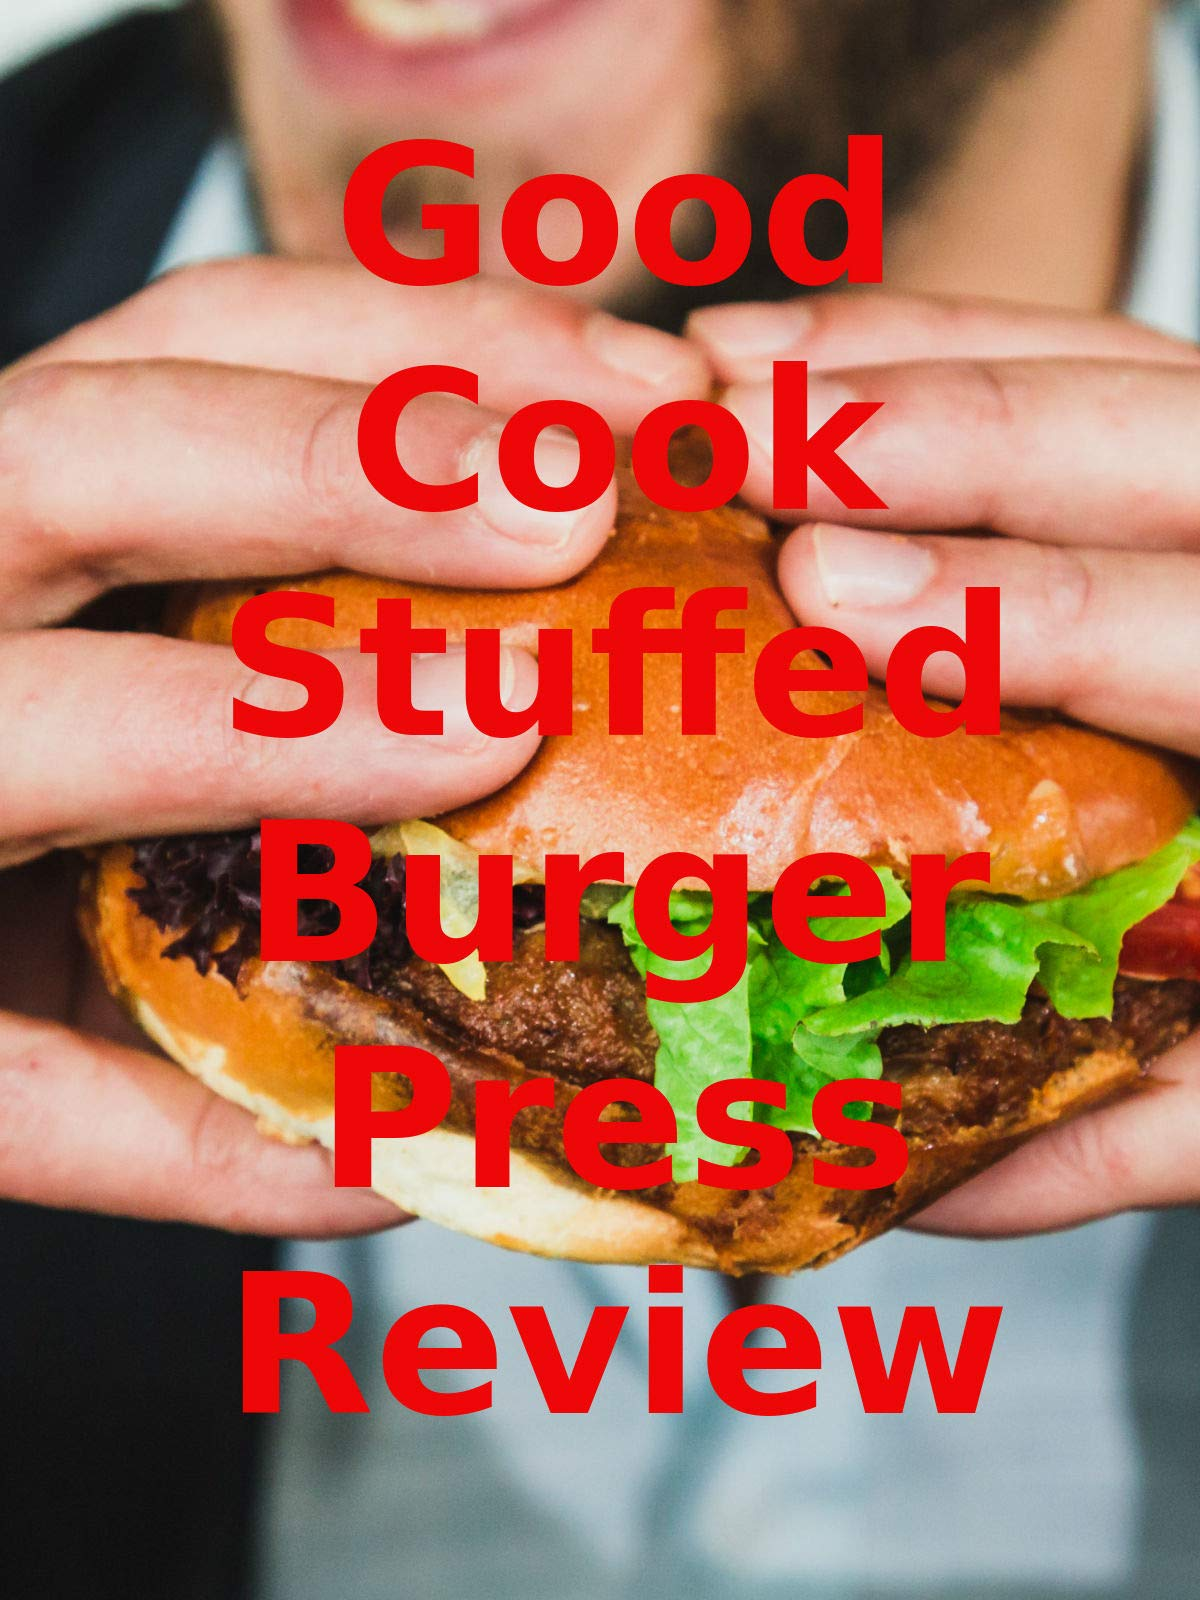 Review: Good Cook Stuffed Burger Press Review on Amazon Prime Video UK